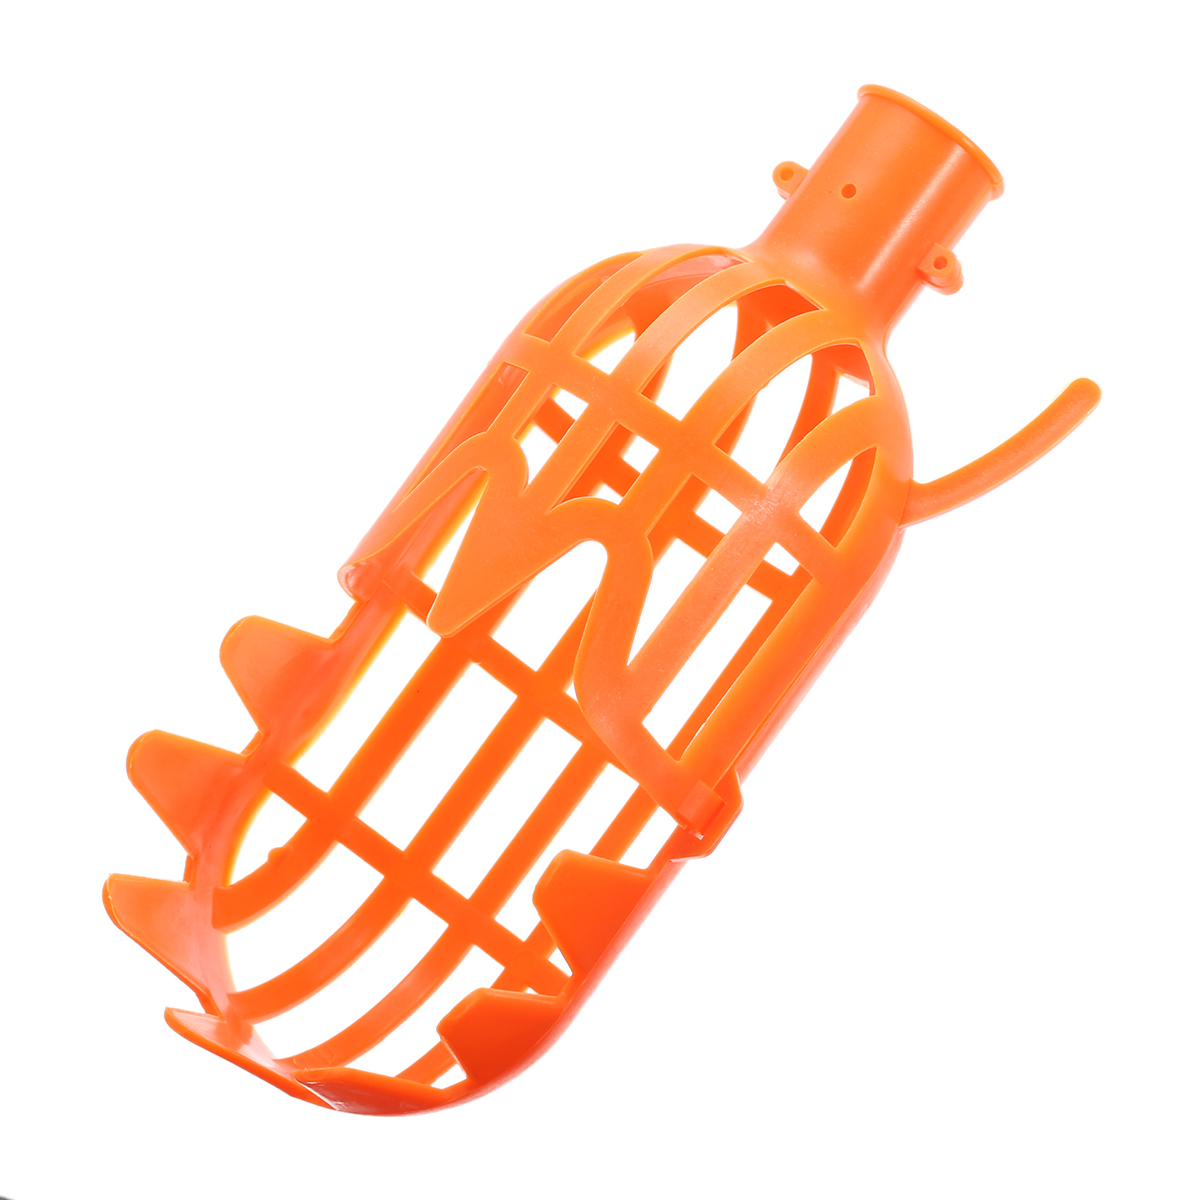 1pcs Plastic Fruit Picker Without Pole Small Fruit Catcher Orange Gardening Convenient Picking Tool Mayitr